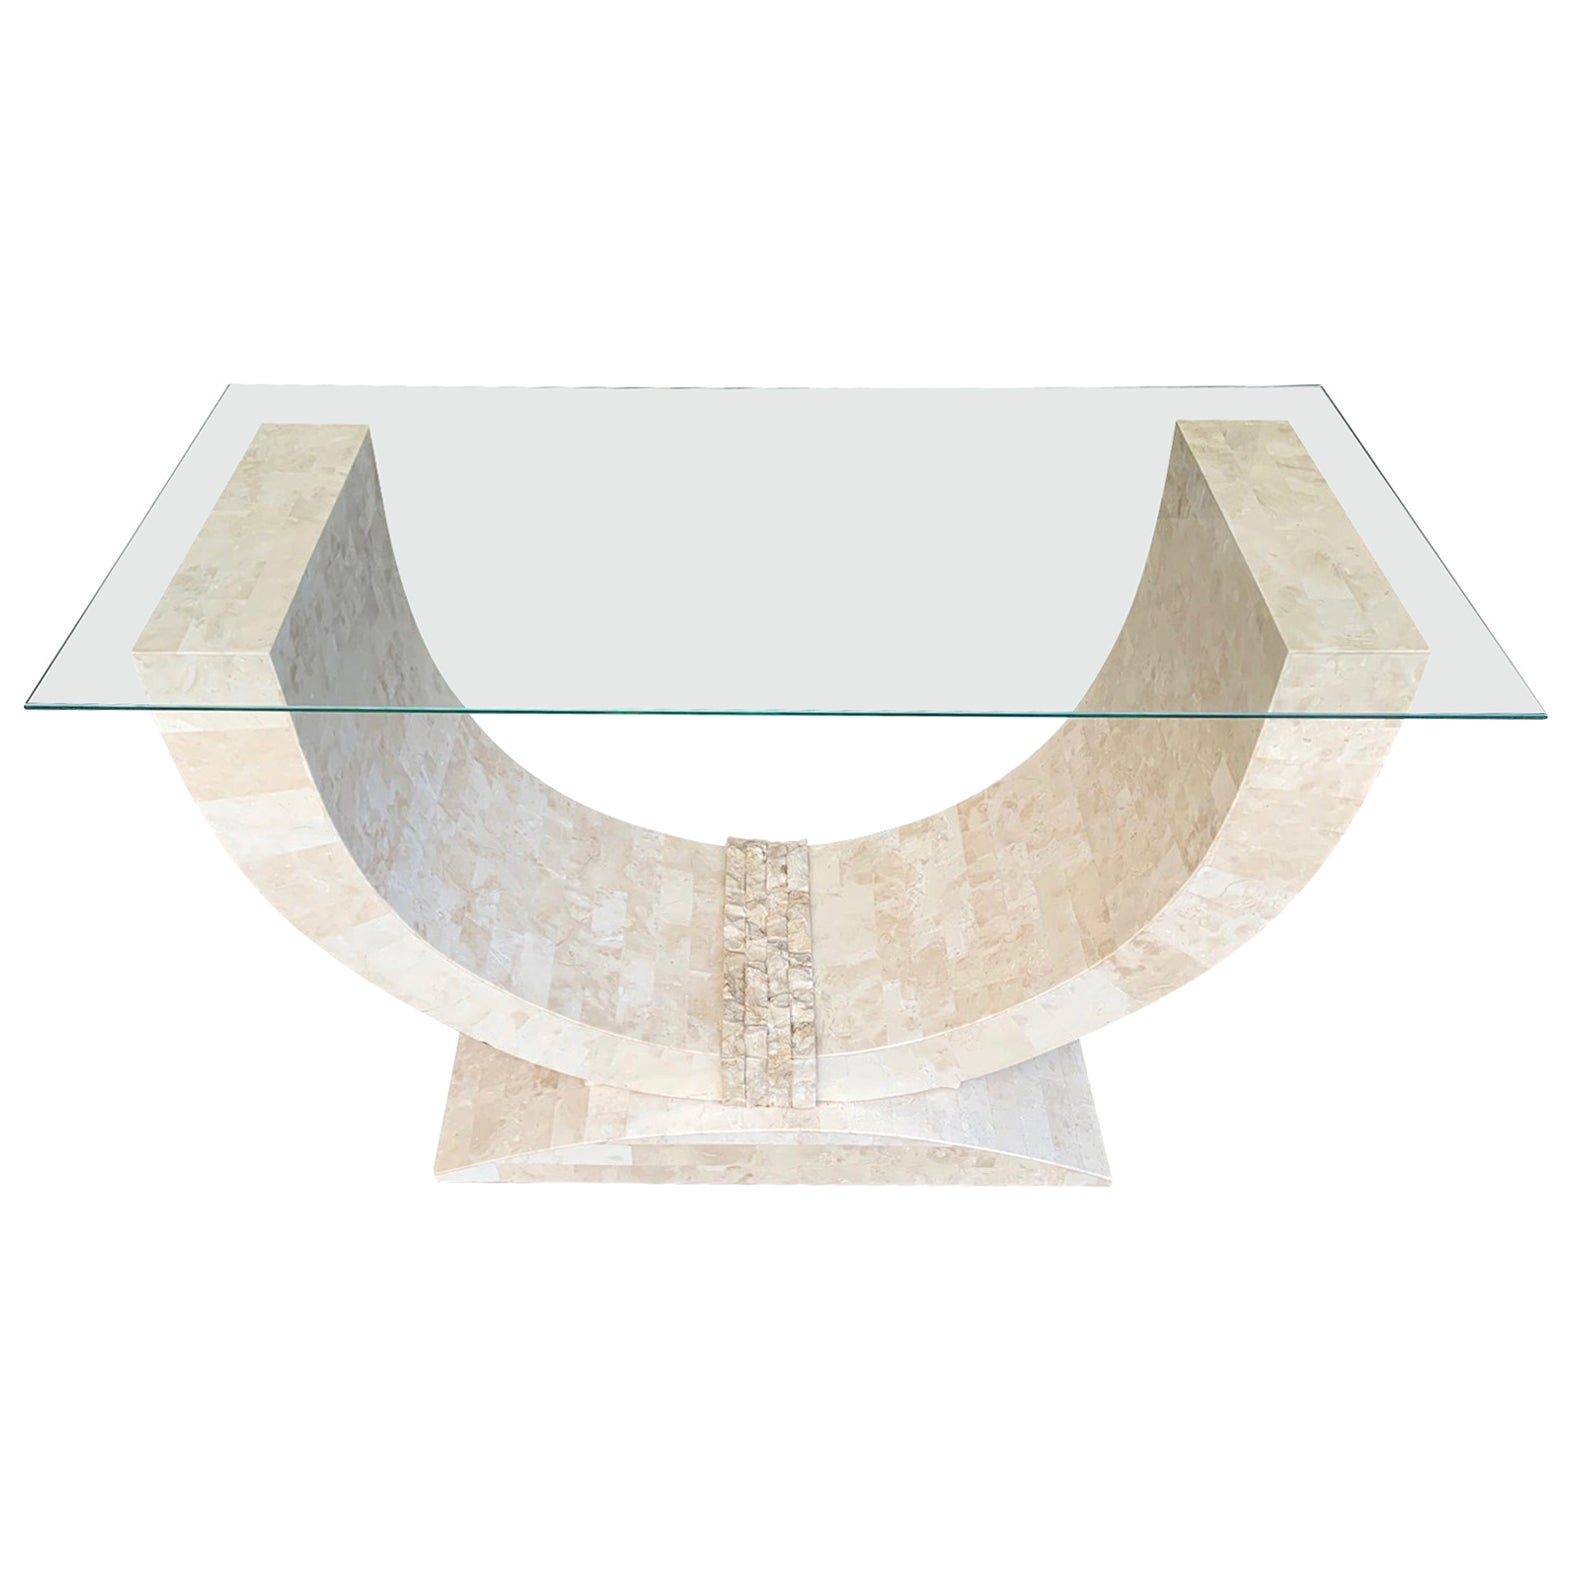 Maitland Smith Tessellated Marble Console Table with Bevelled Glass Top